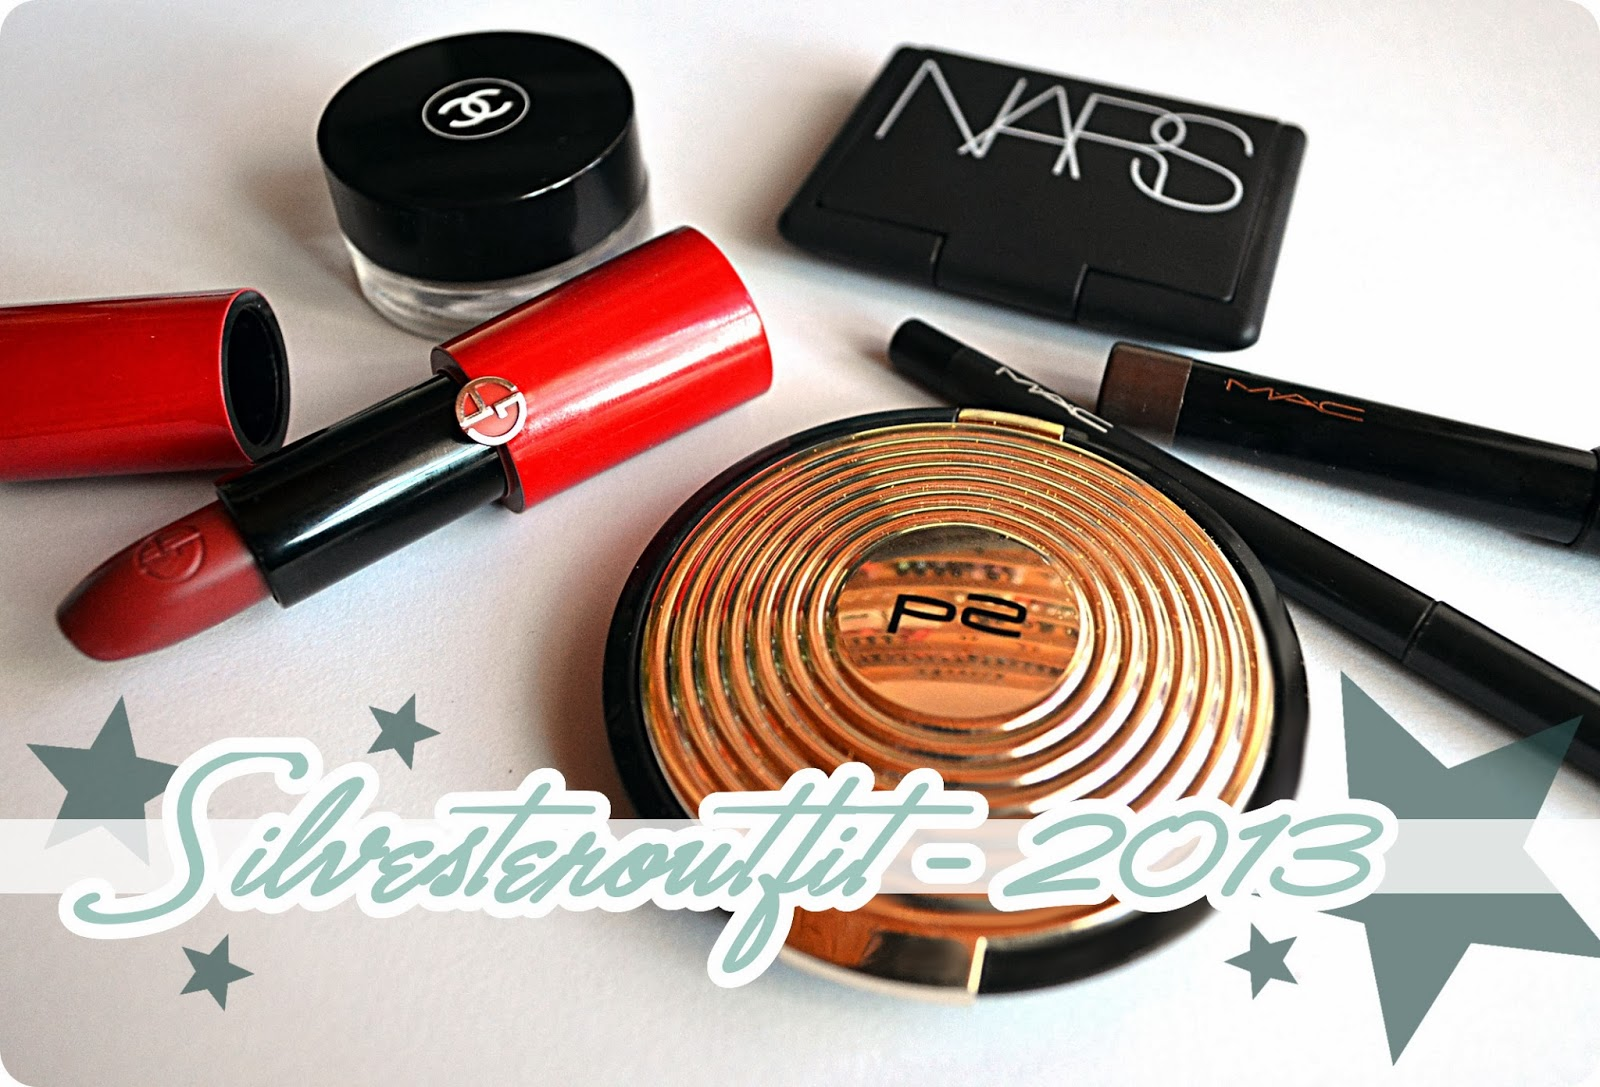 Silvesterblogparade 2013 - Mein Make-up